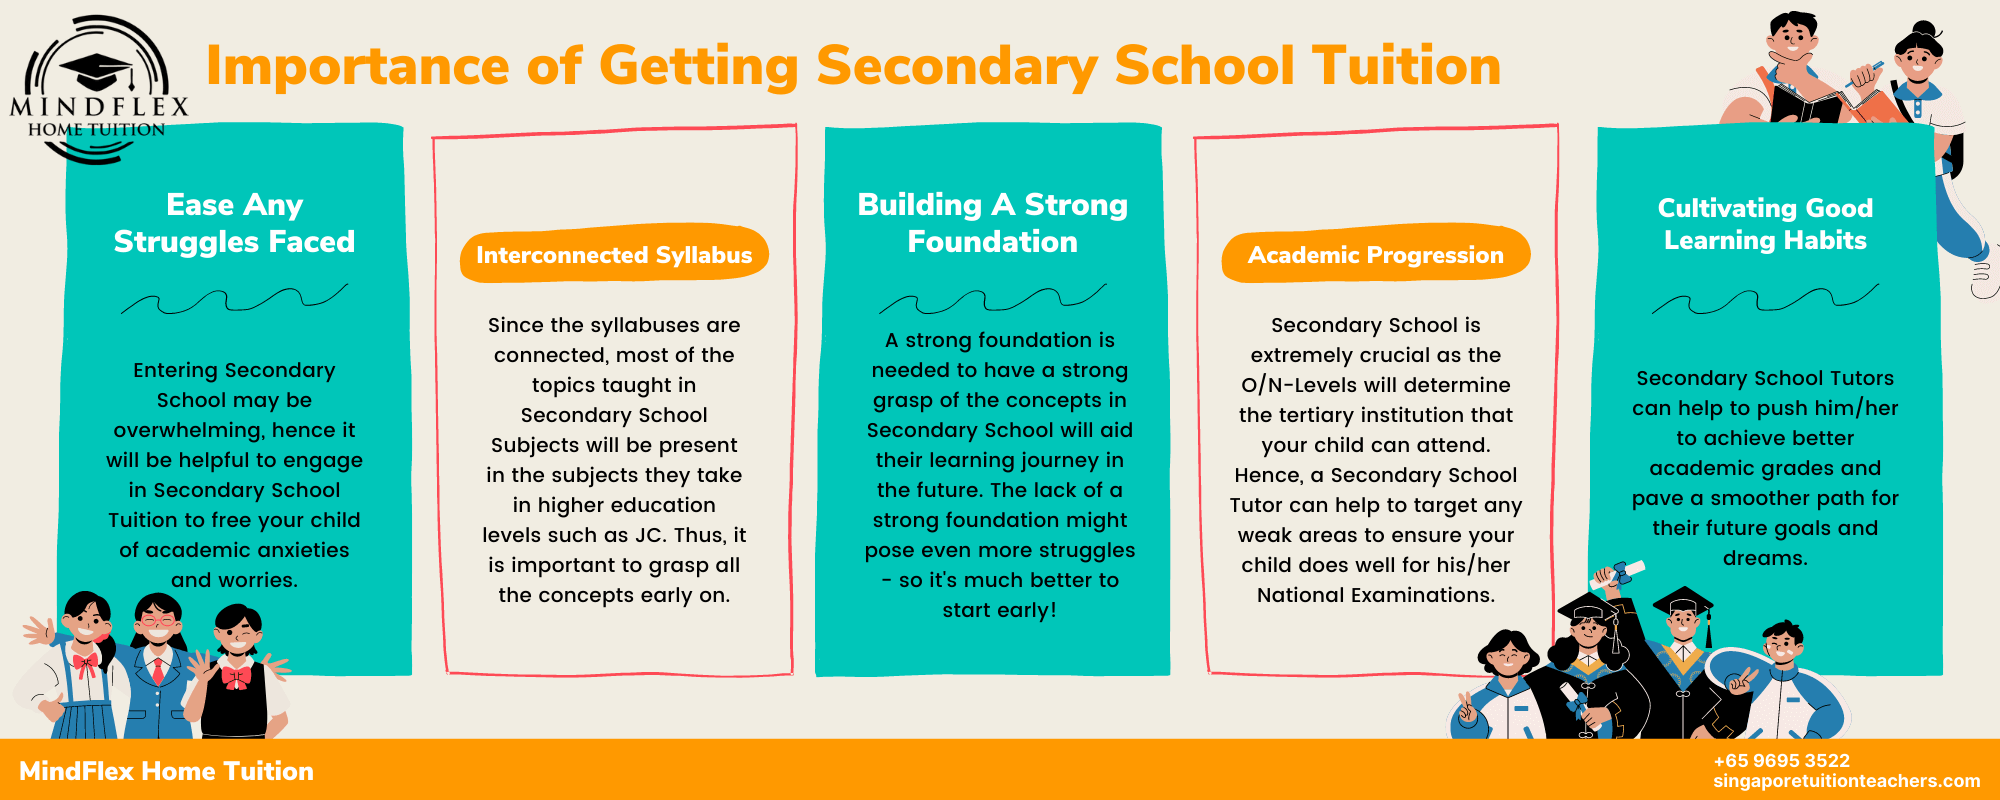 Infographic on Importance of Secondary School Tuition